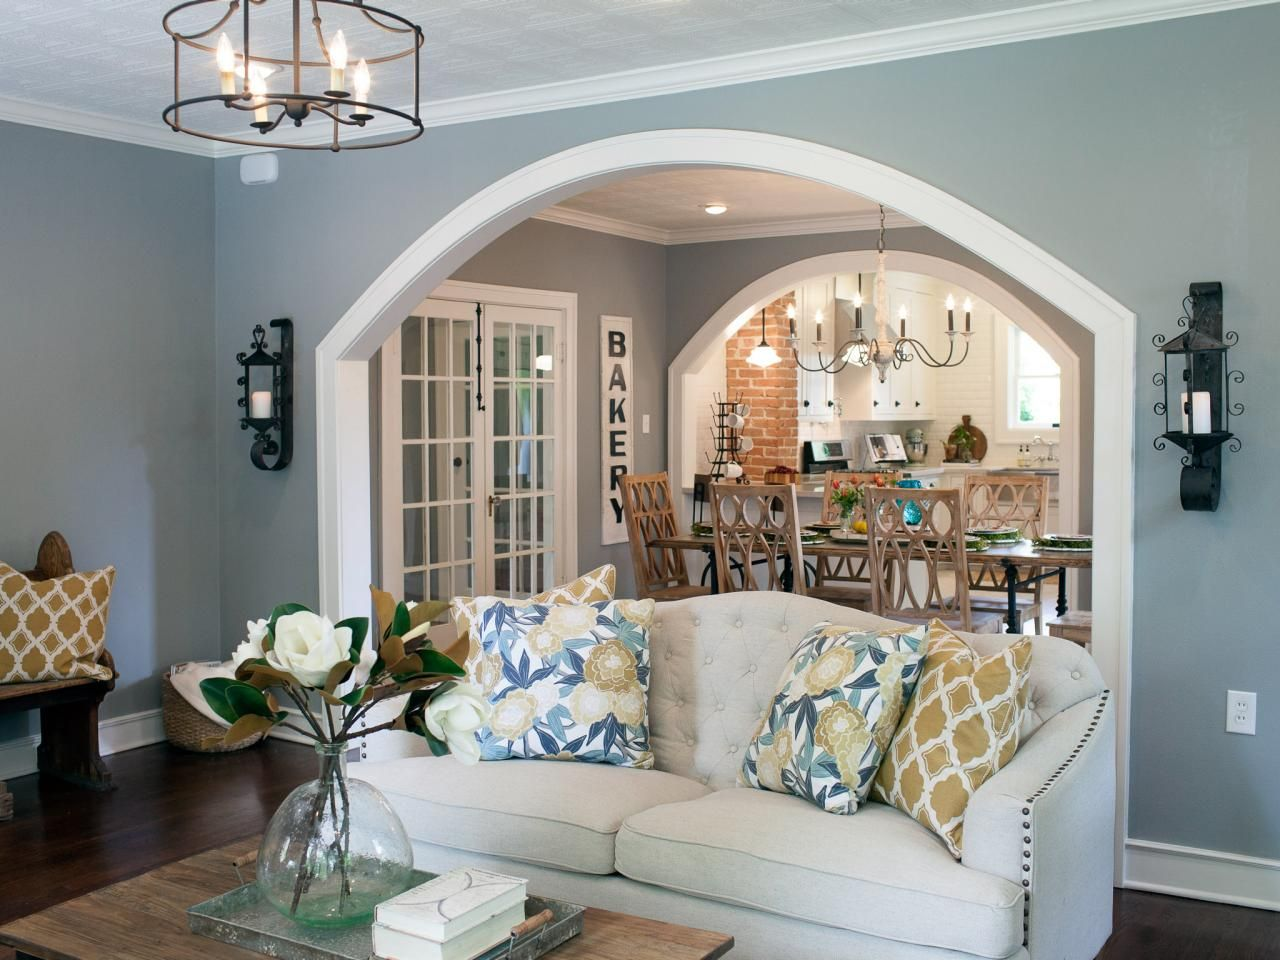 Love This Wall Color.HGTVu0027s Fixer Upper With Chip And Joanna Gaines